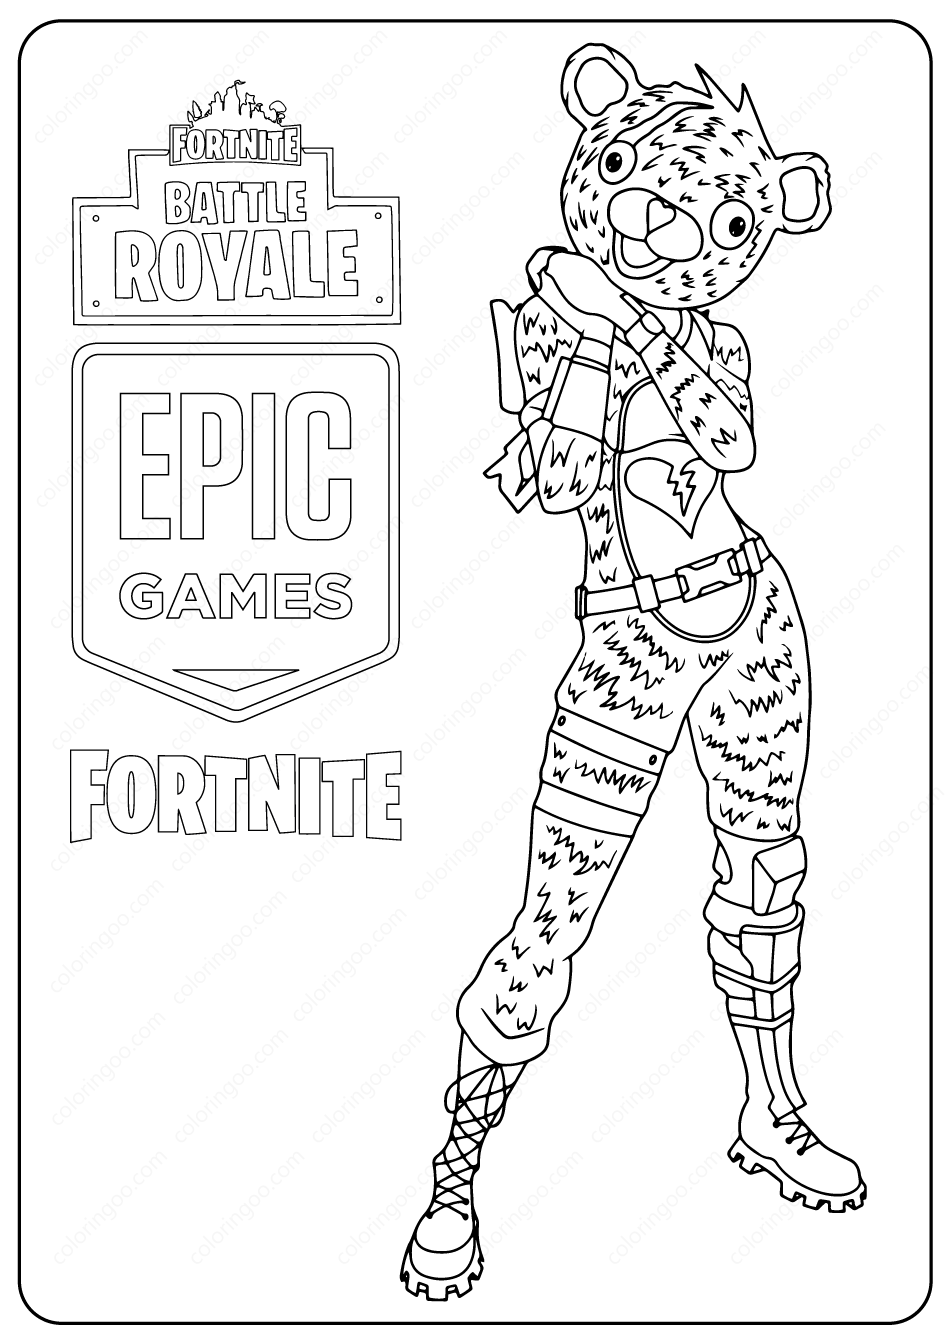 Free Printable Fortnite Bear Skin Coloring Page